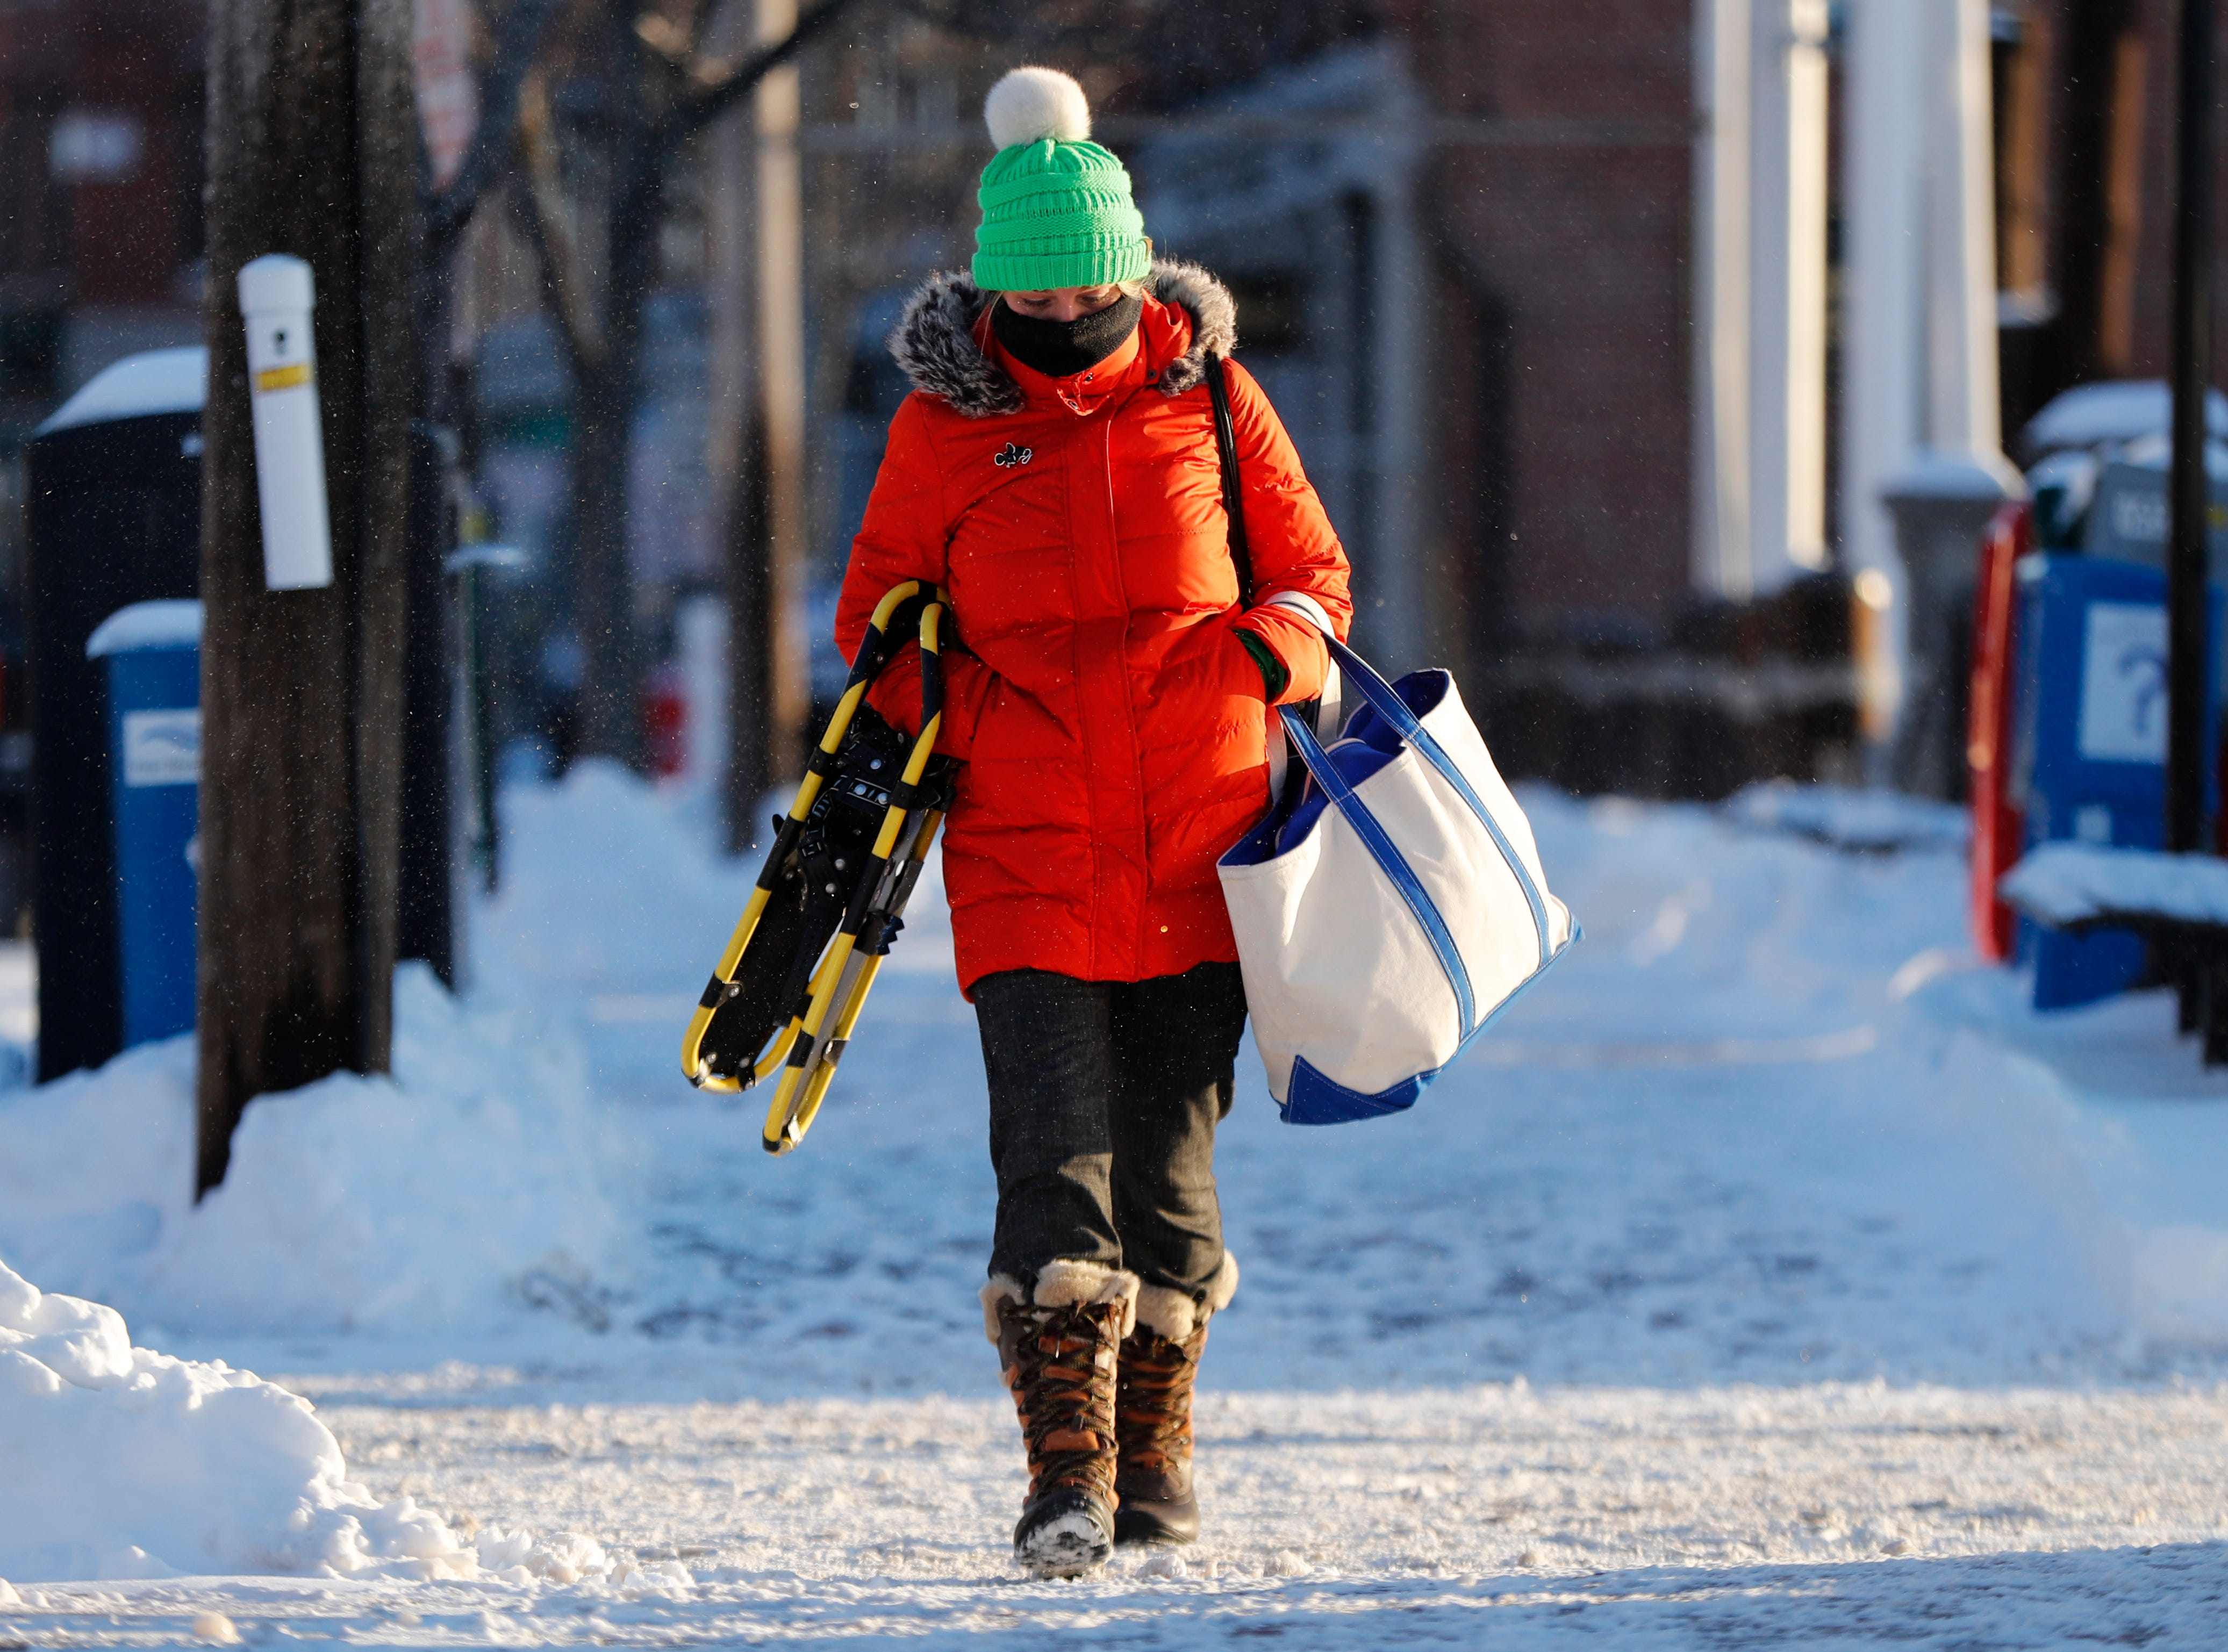 Lauren Webster is bundled up as she makes her way to work on a bitter cold morning, Thursday, Jan. 31, 2019, in Portland, Maine, Undaunted by the polar vortex that's making an appearance in northern New England, Webster carries a set of snowshoes that she intends to use at a nearby park after work.